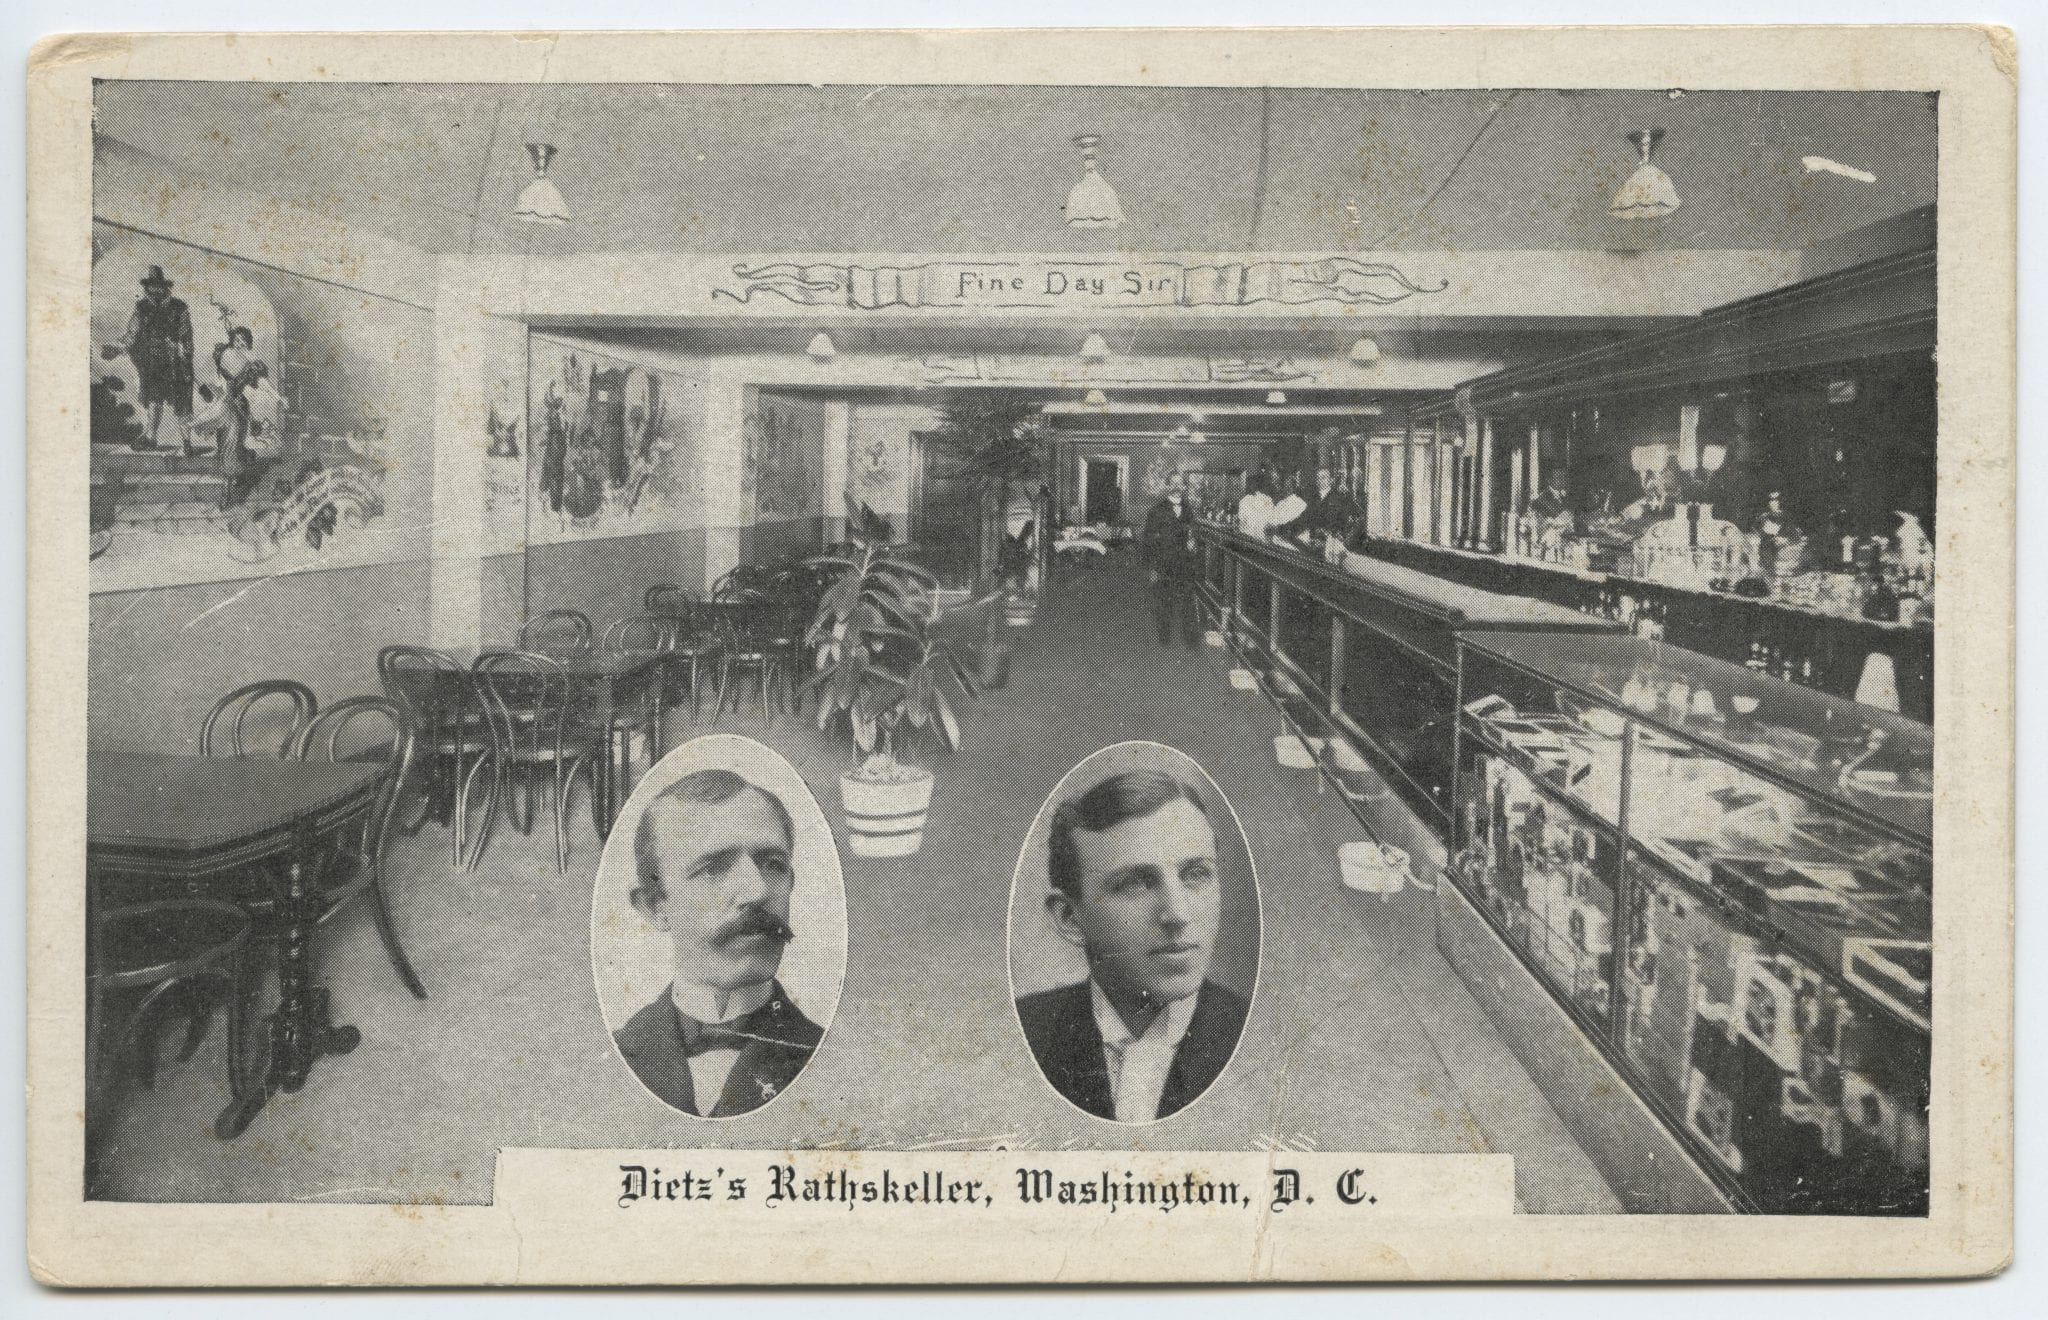 The front side shows the interior of Charlie Dietz's Rathskeller; the back side provides a Washington Nationals' game schedule. (Follow the See